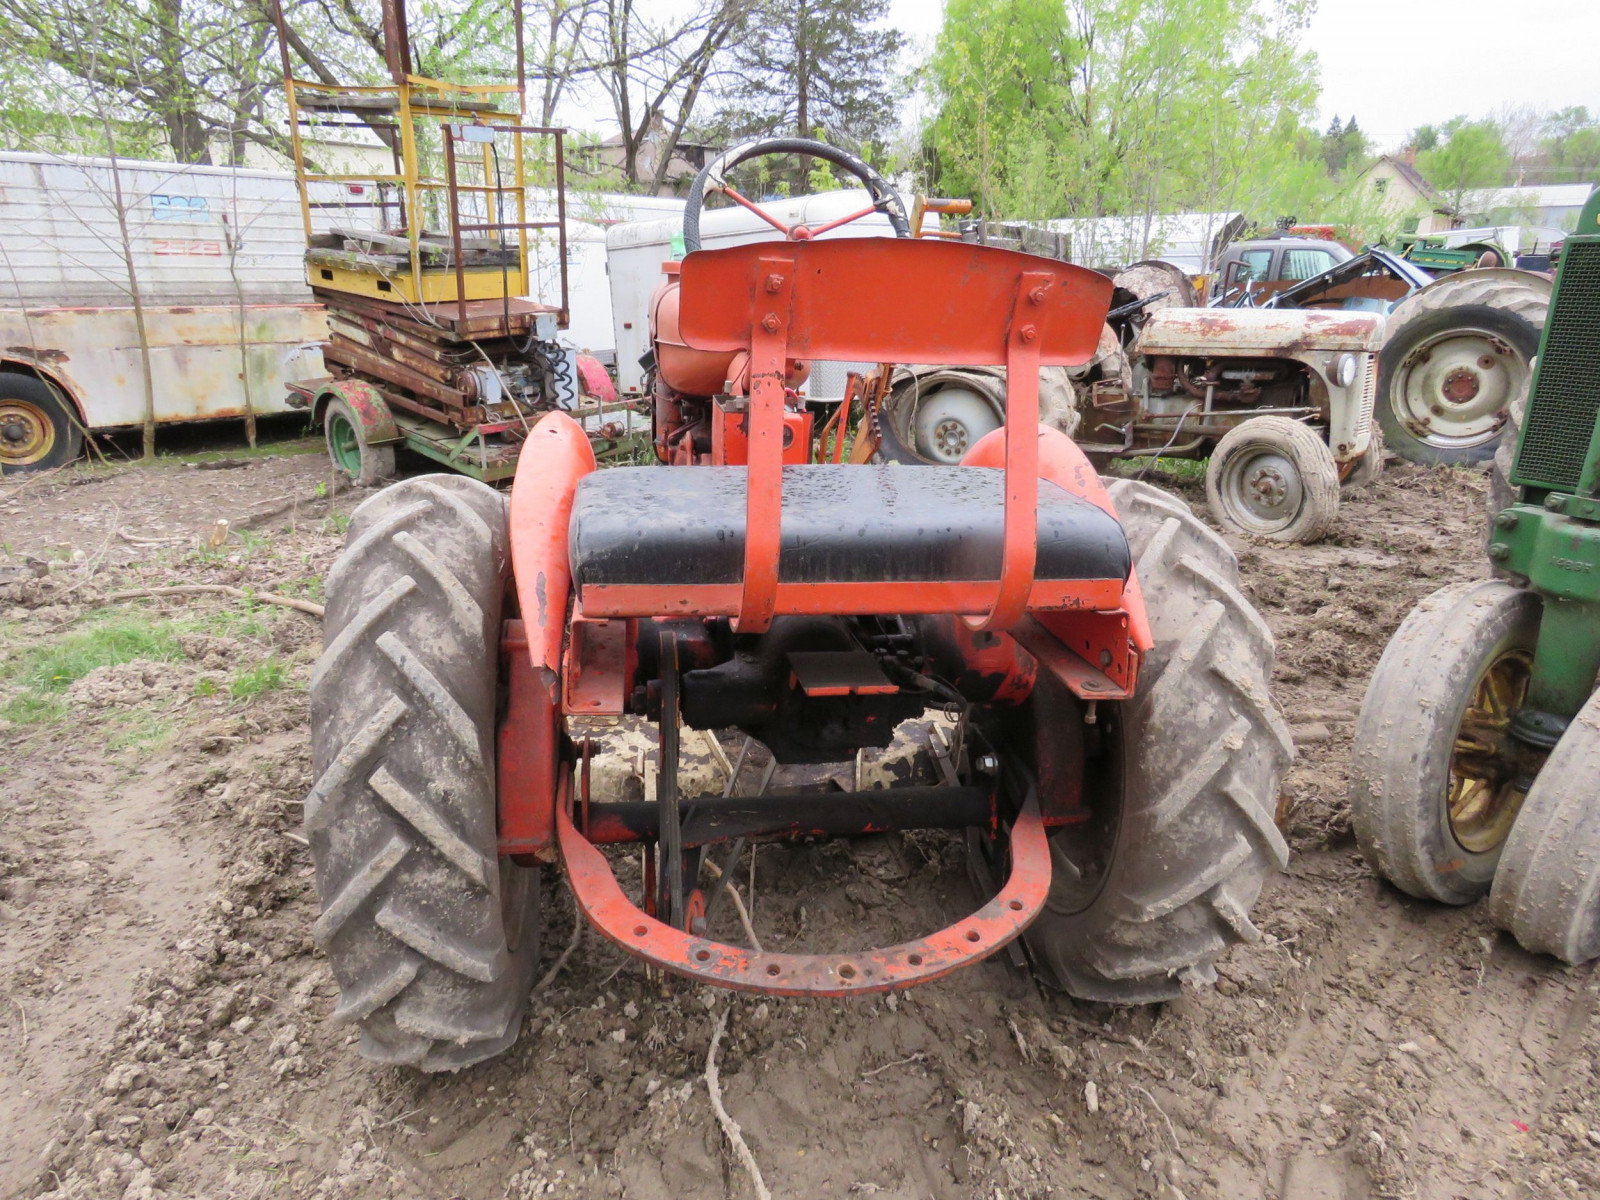 Allis Chalmers B Tractor - Image 4